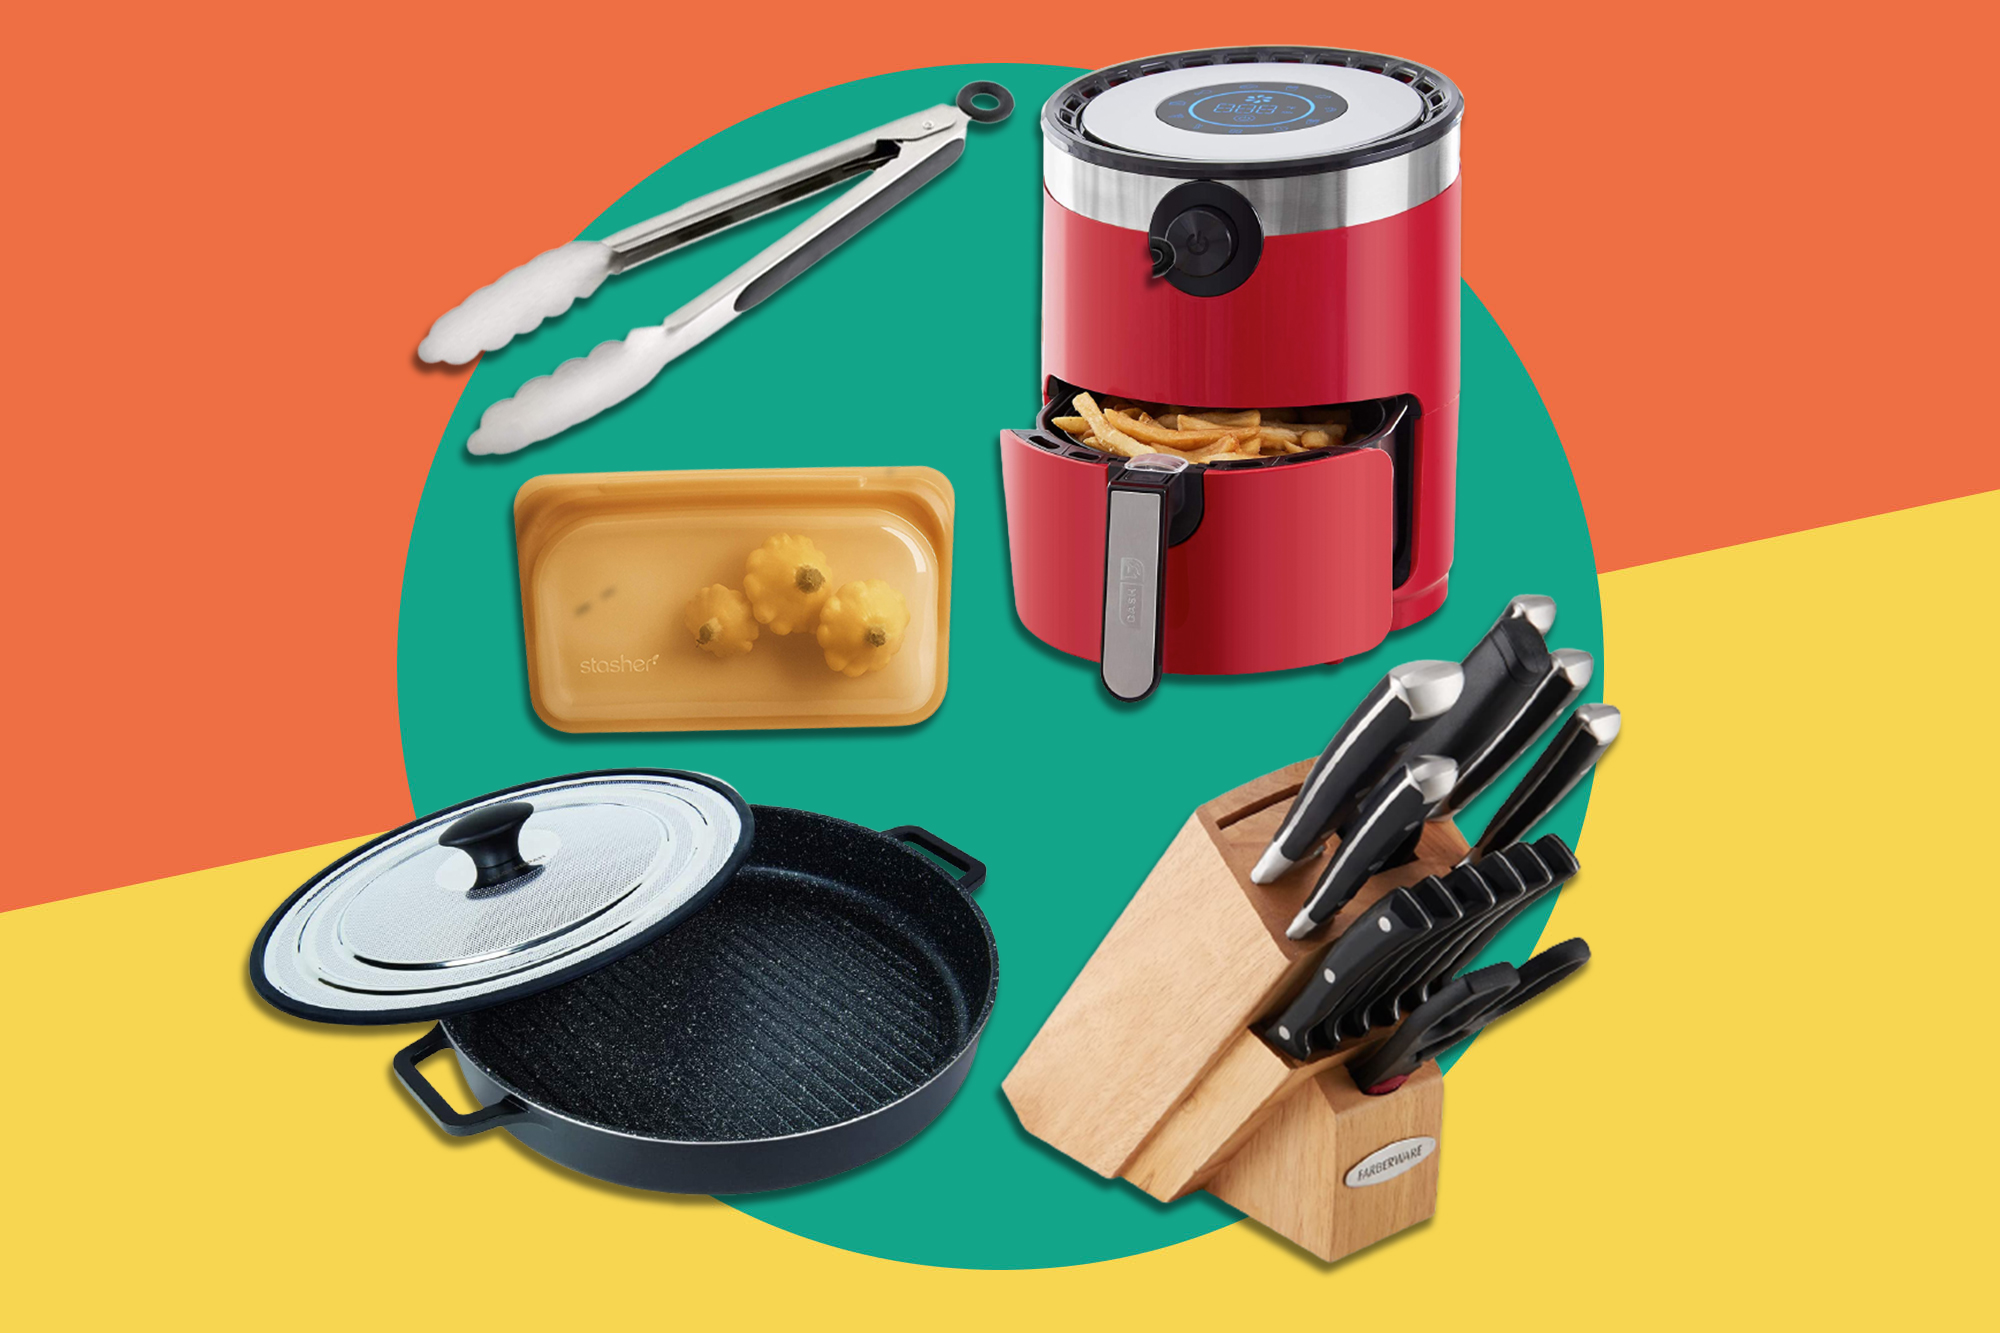 prime day overstock outlet deals